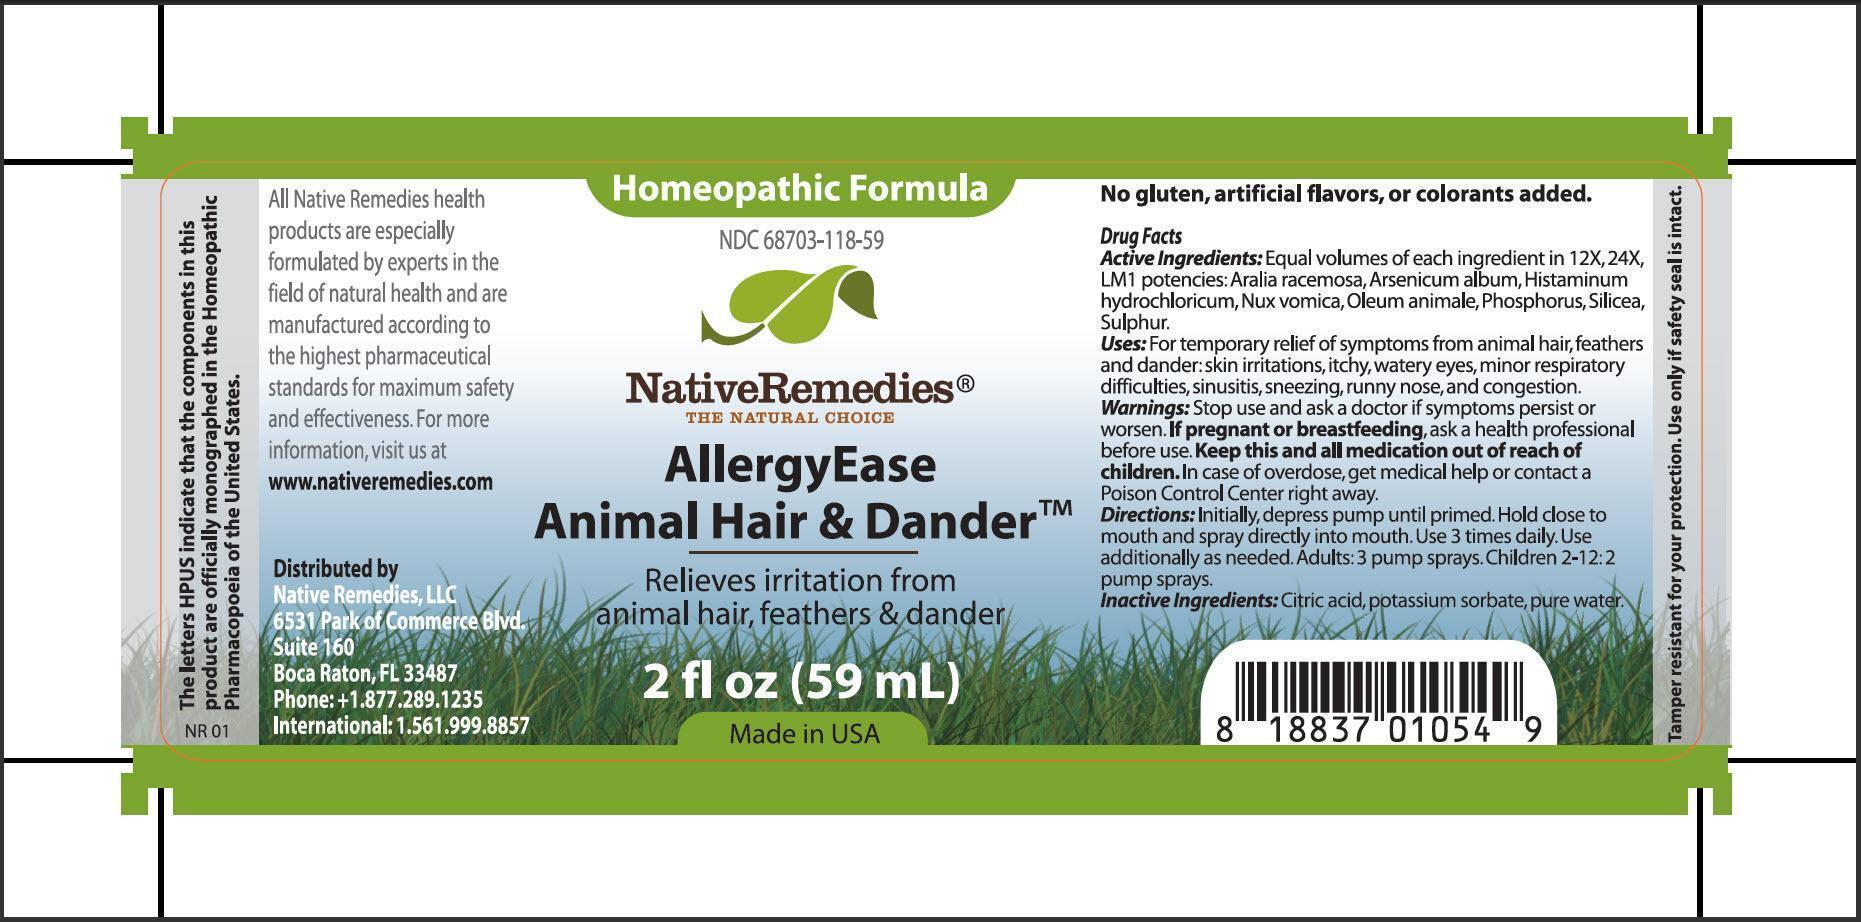 Allergyease Animal Hair And Dander (Aralia Racemosa, Arsenicum Album, Histaminum Hydrochloricum, Nux Vomica, Oleum Animale, Phosphorus, Silicea, Sulphur) Spray [Native Remedies, Llc]